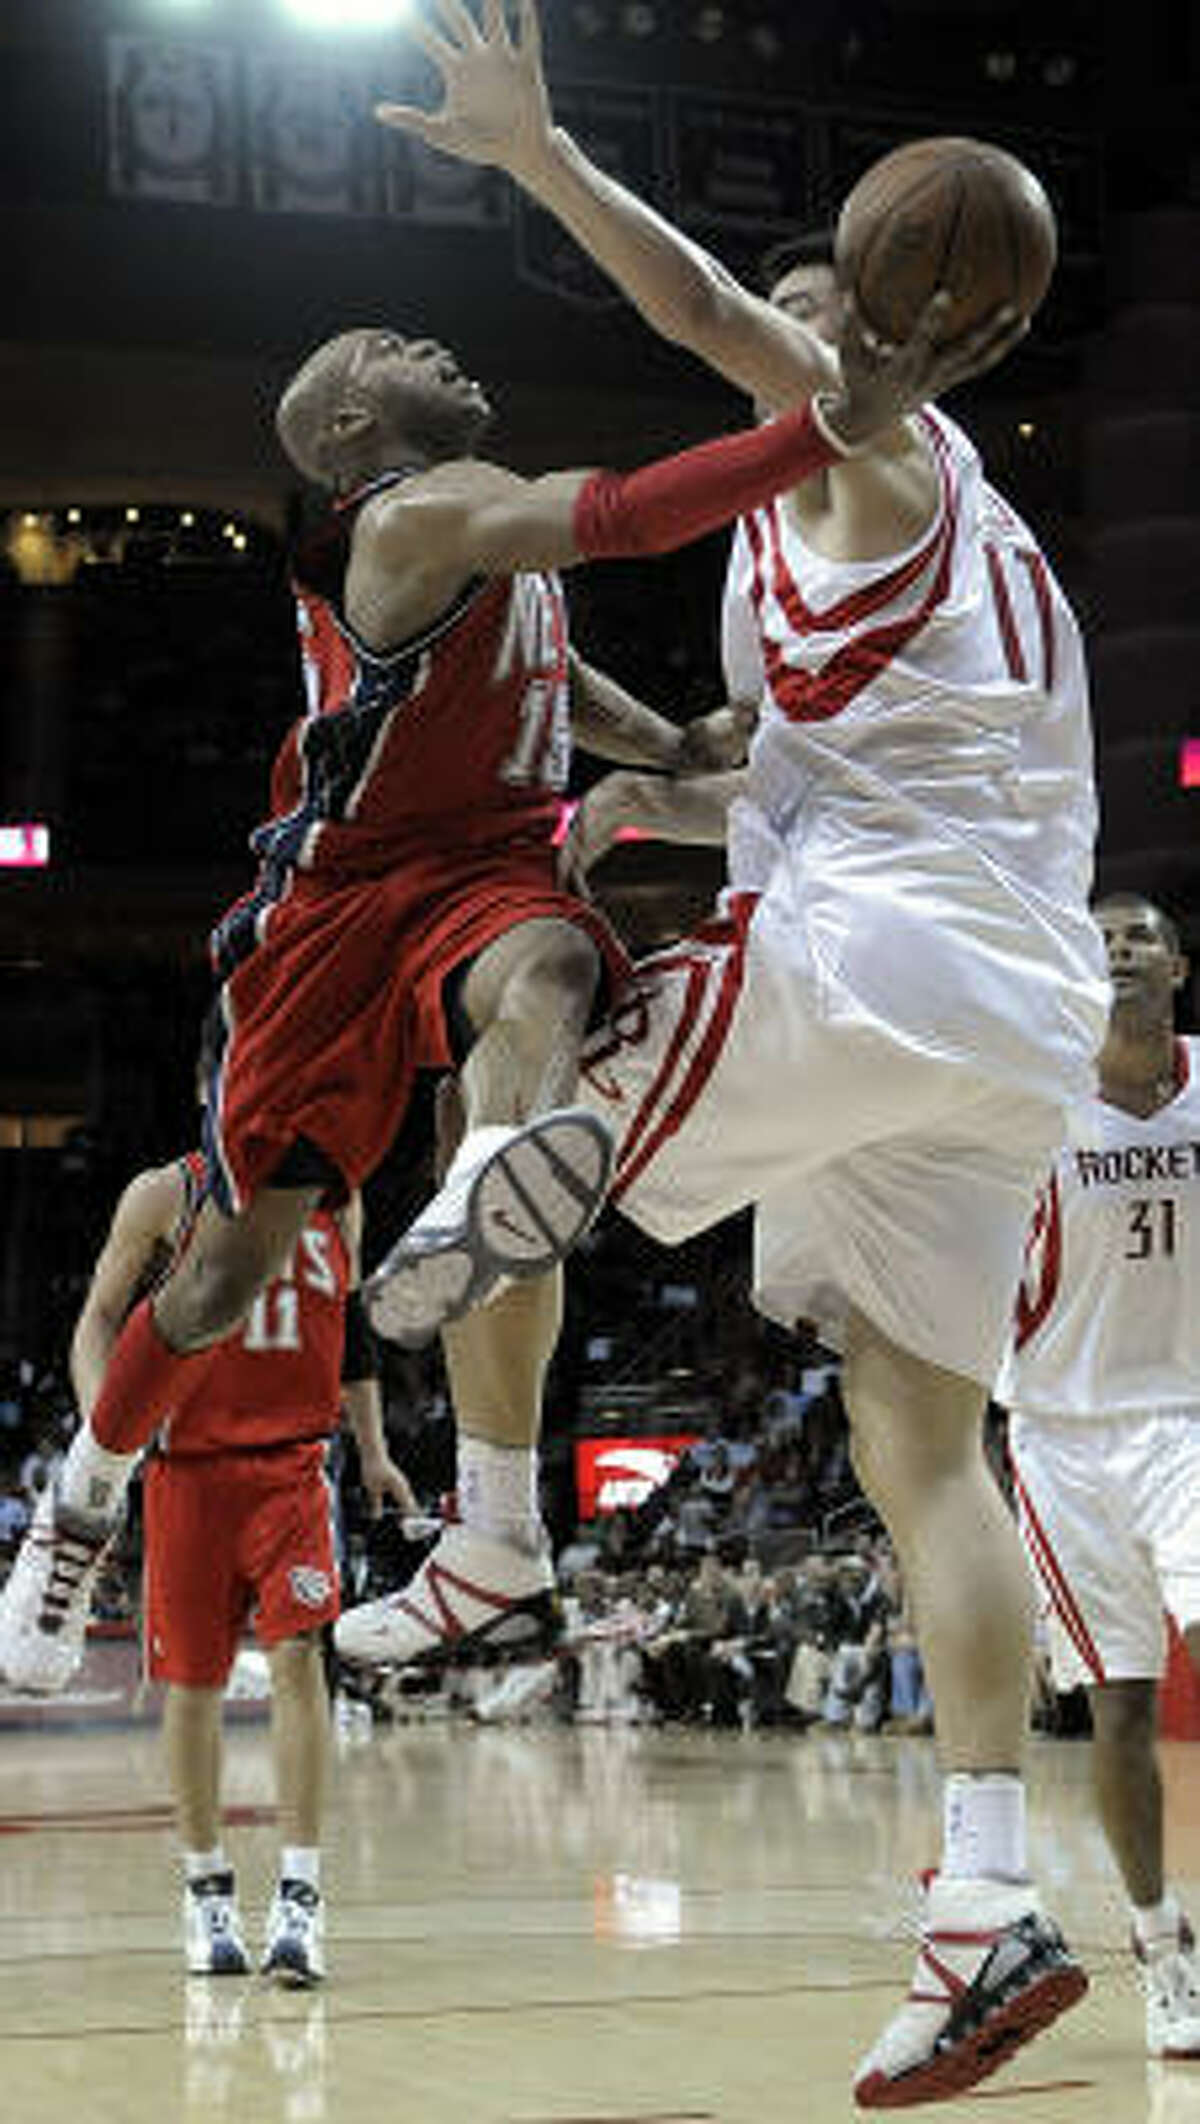 Nets guard Vince Carter, left, drives past Yao Ming on his way to the basket in the first half.